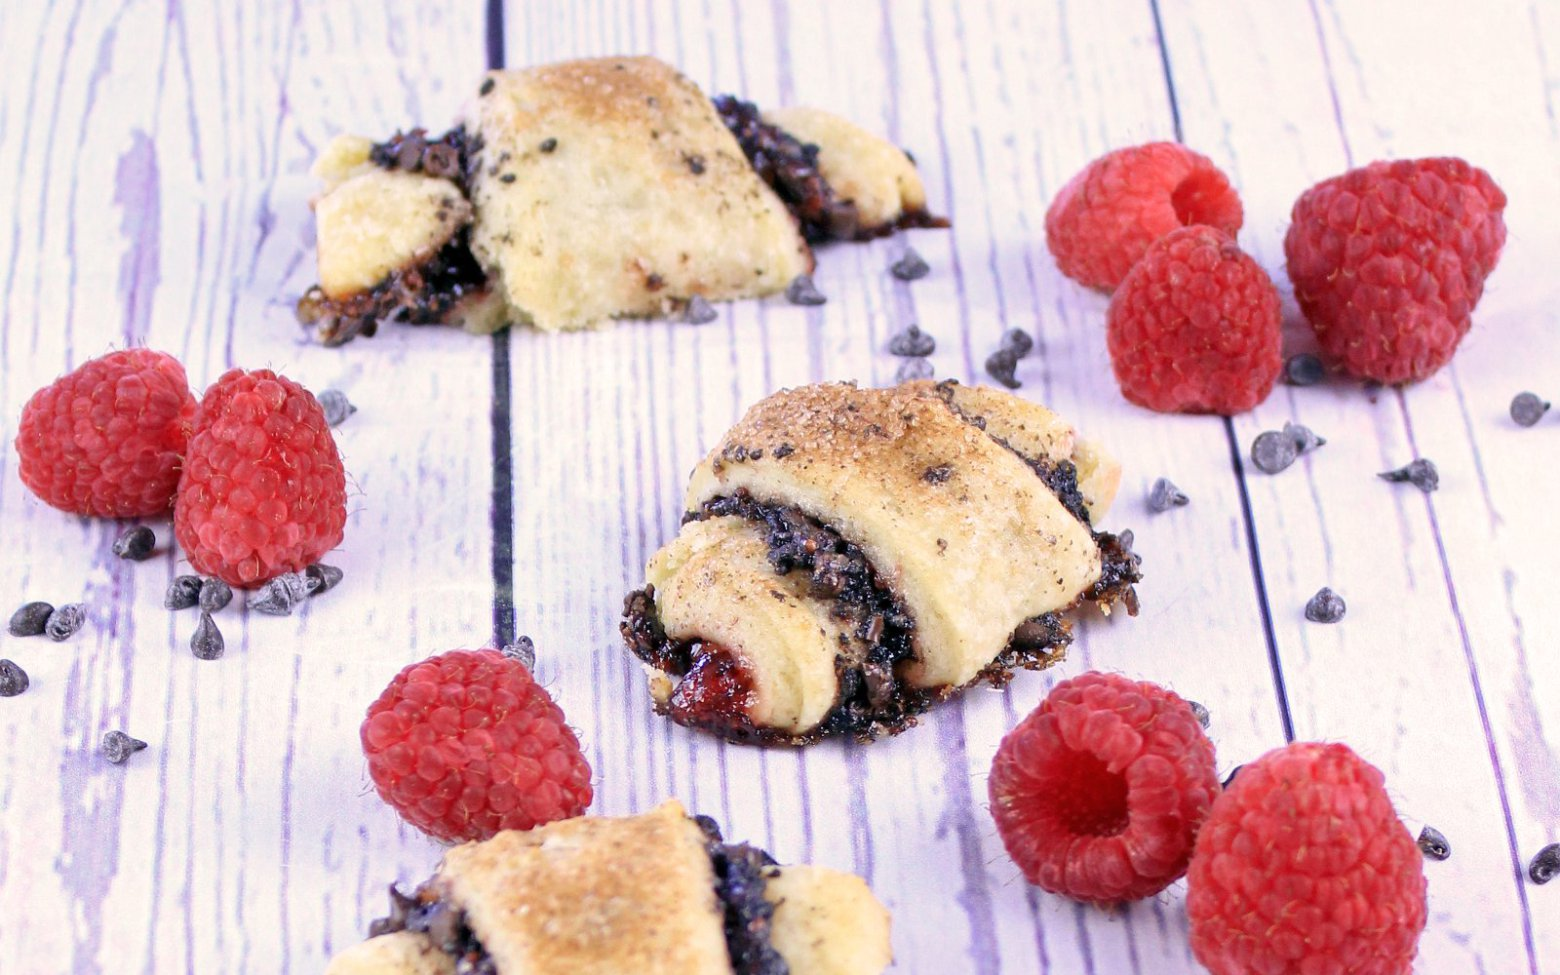 Vegan Chocolate Raspberry Rugelach